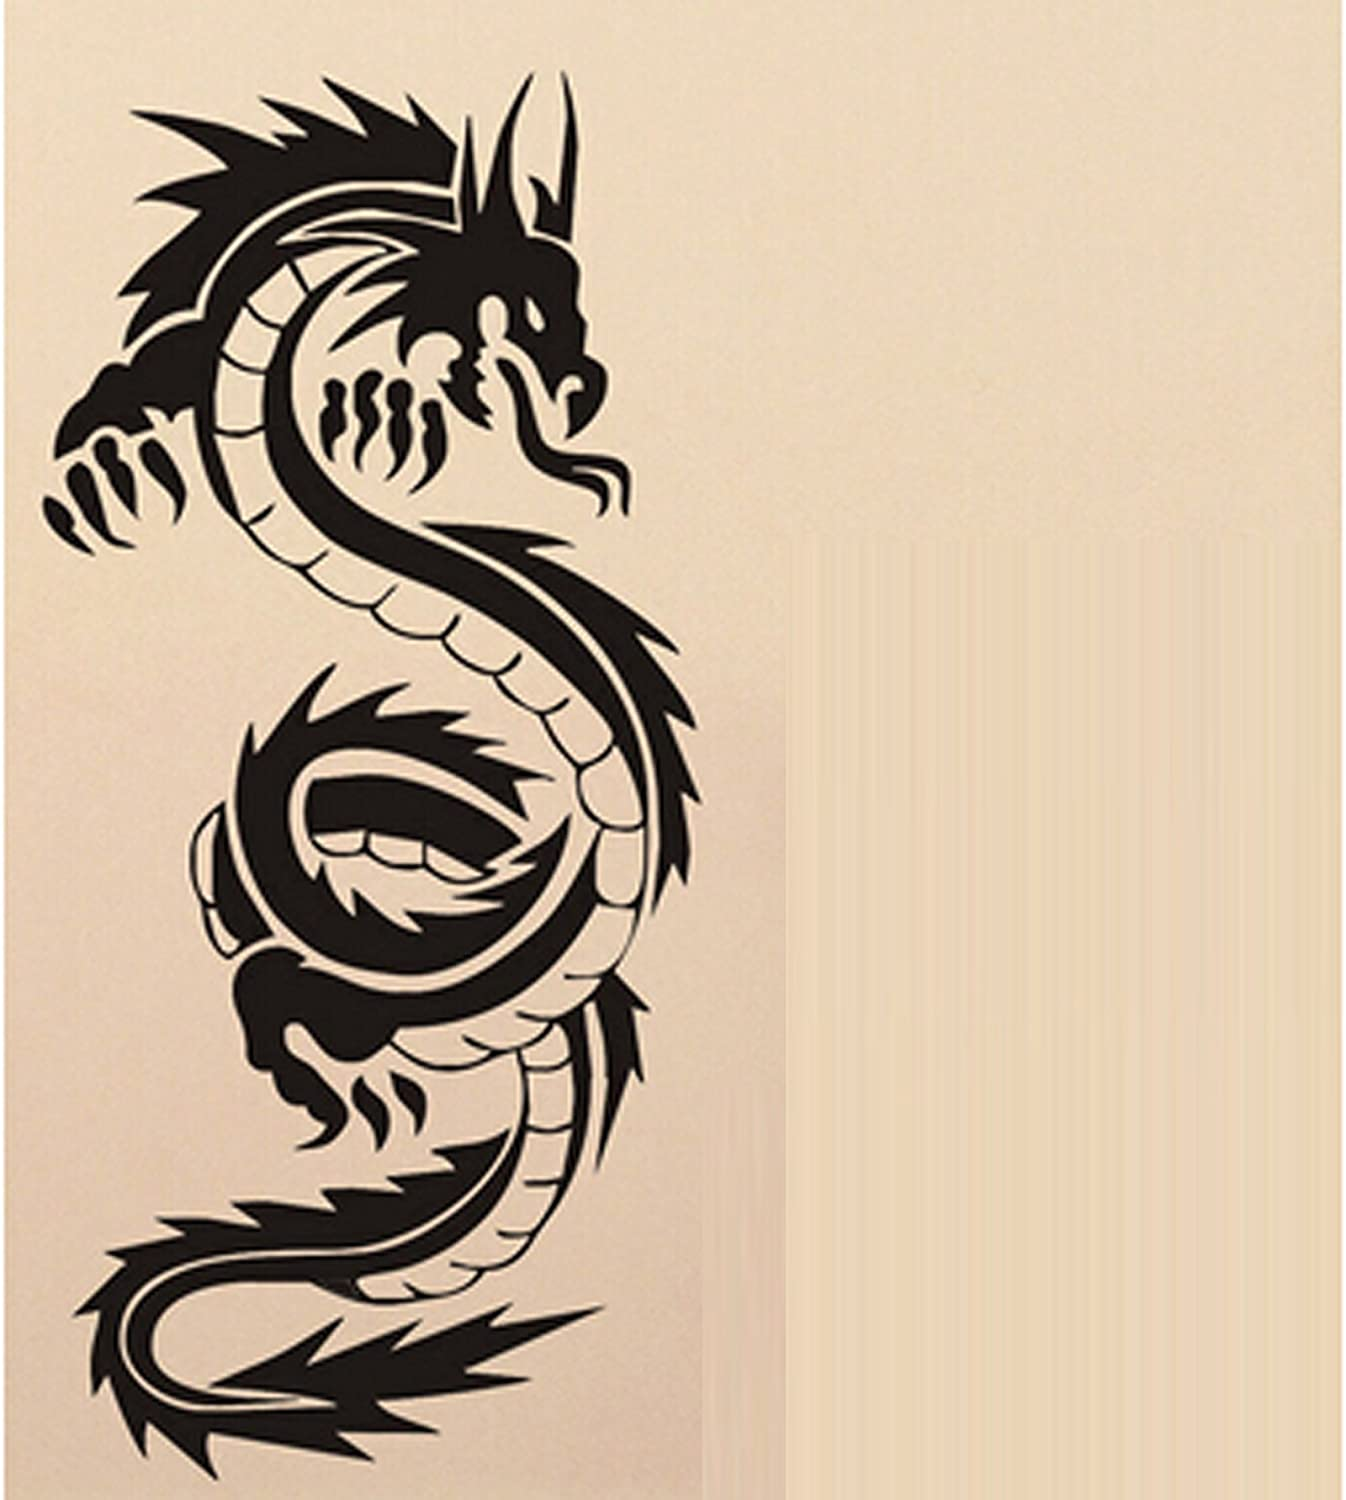 Large Animal Chinese Dragon Wall Decal Sticker The Living Room Background  Kidu0027s Stickers Vinyl Removable Black Color